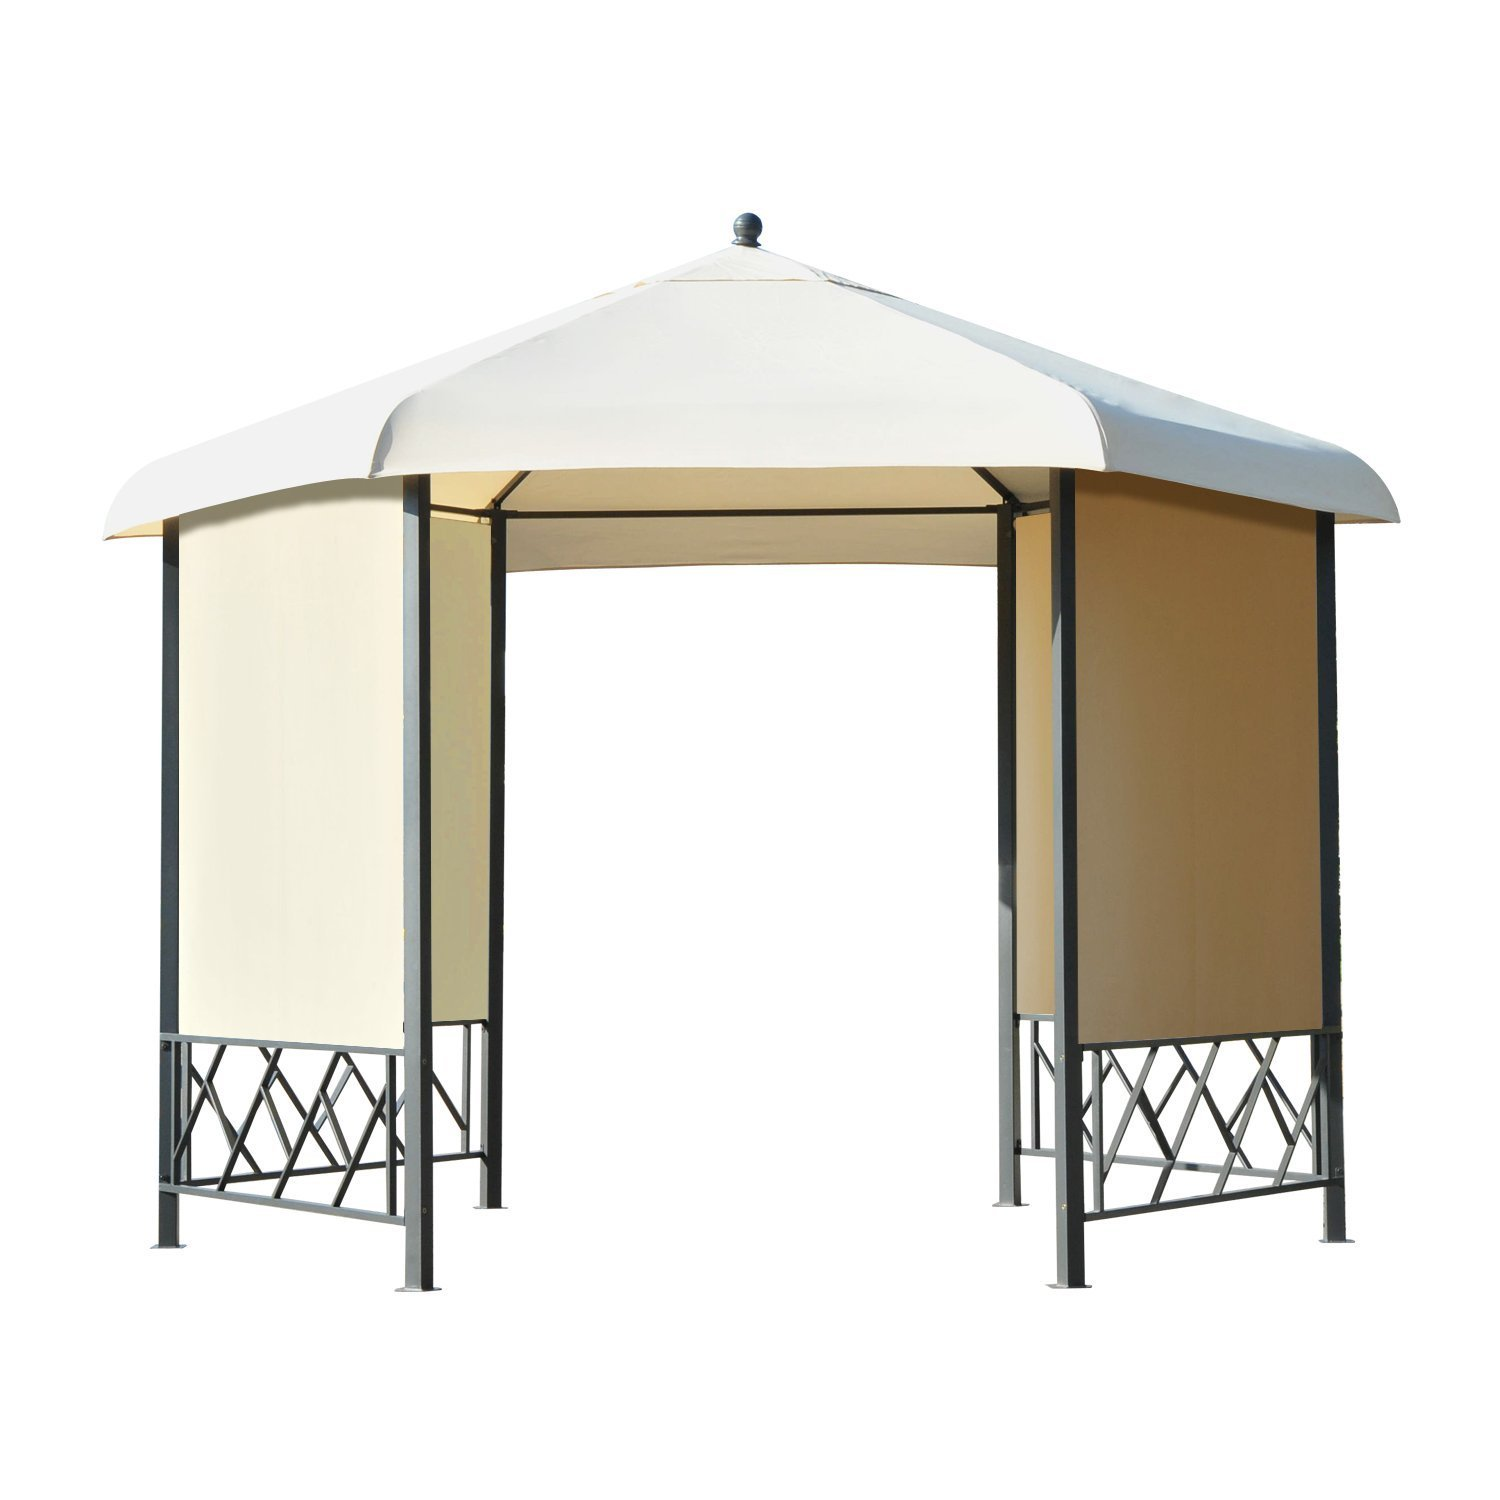 Outsunny 12' x 12' Steel Hexagonal Gazebo Canopy with Removable Side Panels